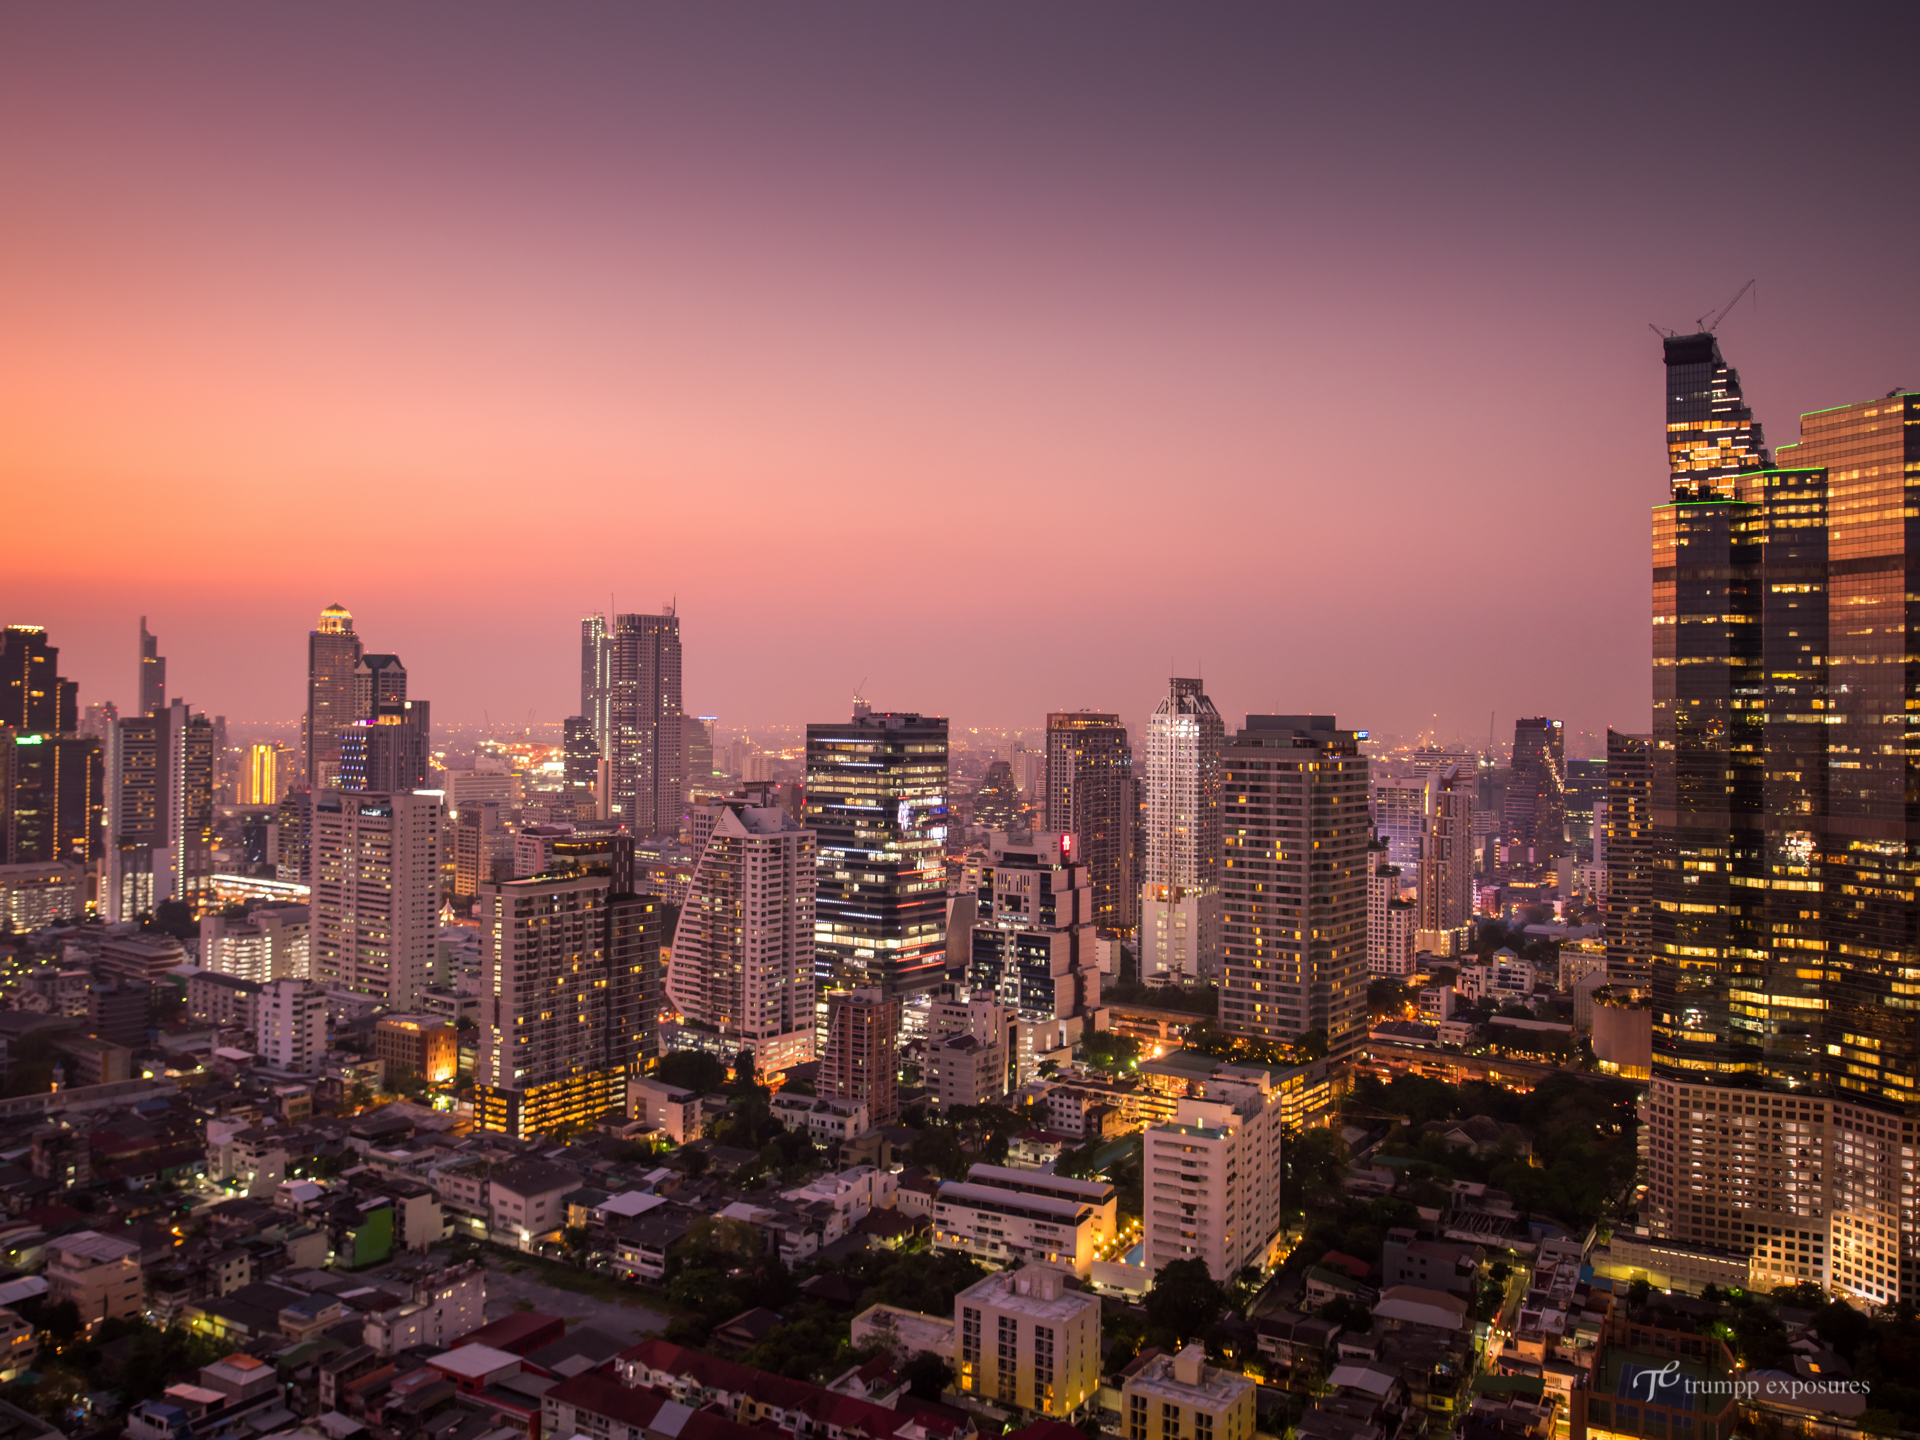 Bangkok skyline sunset sky bar sathorn trumpp-exposures Hochzeitsfotografie Berlin Reiseblog Bangkok Thailand